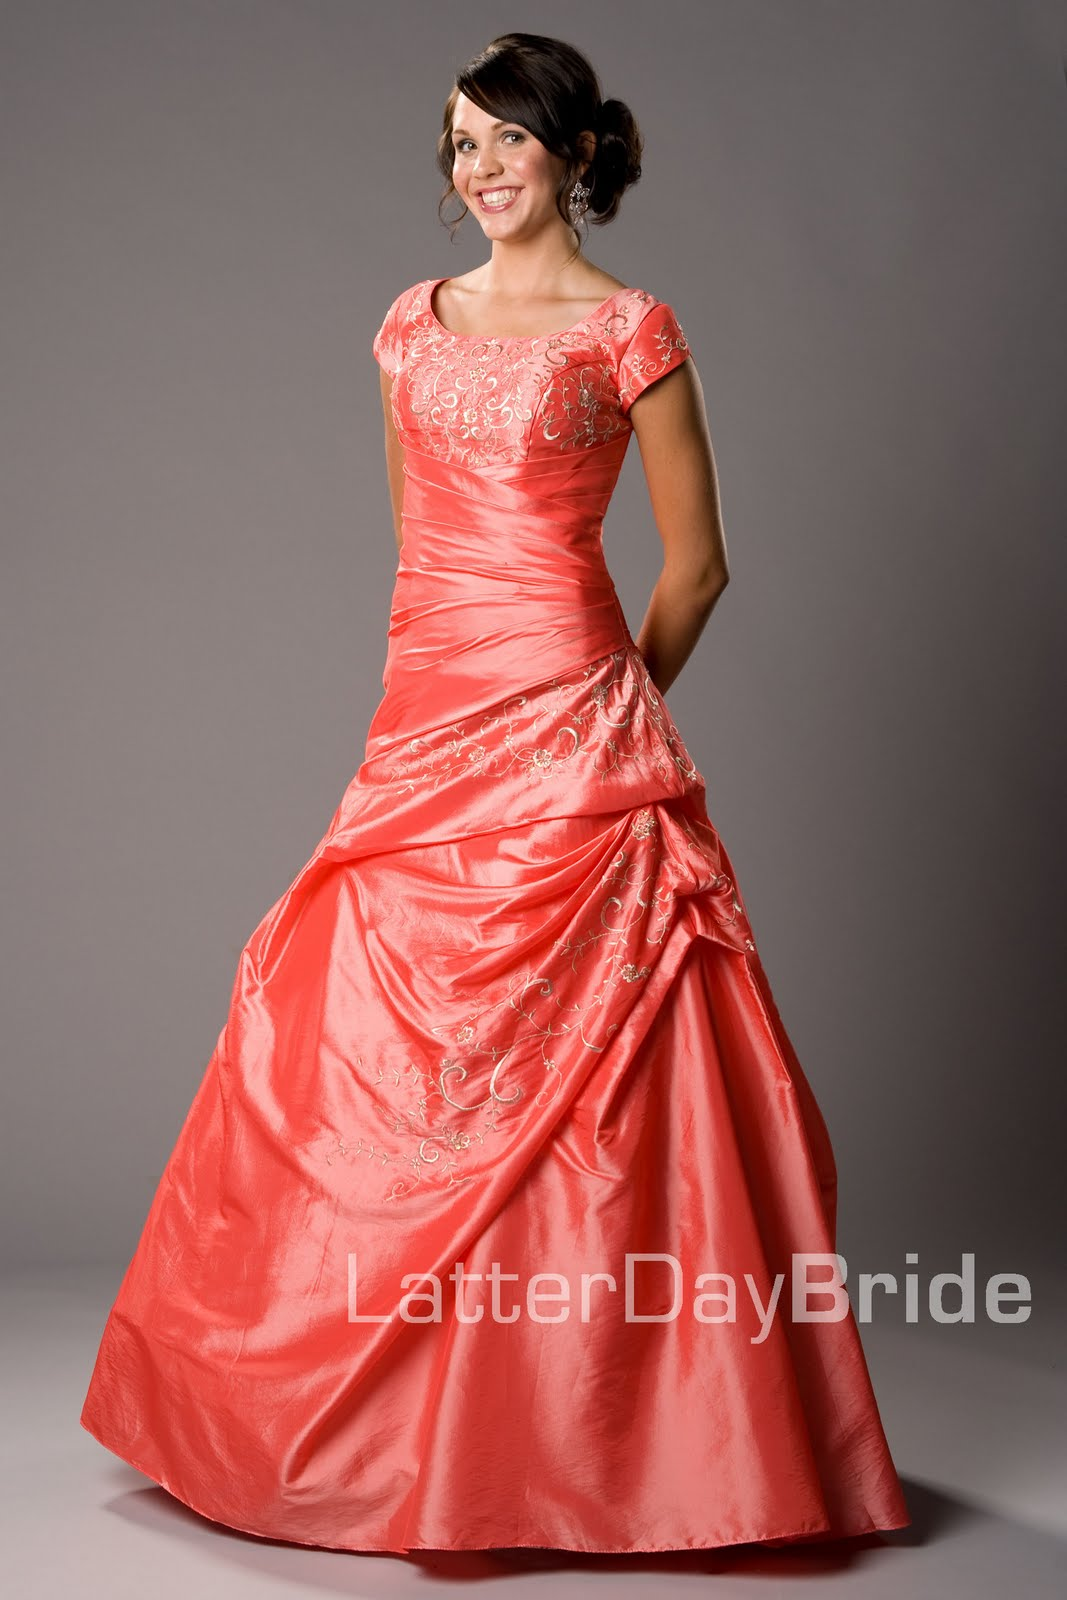 Where Can I Rent Prom Dresses In Utah - Long Dresses Online